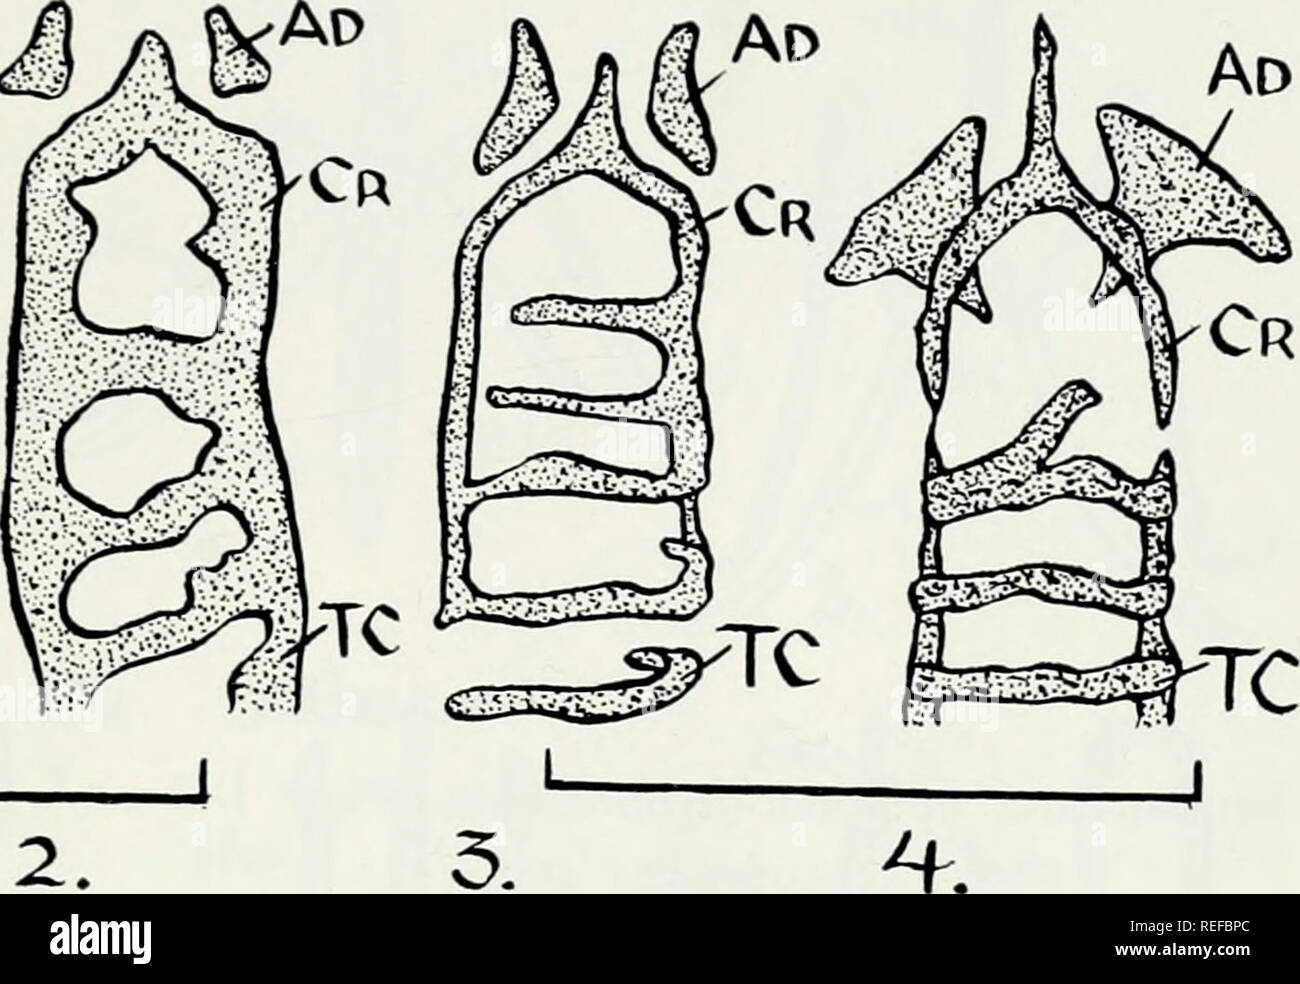 . Comparative osteology of the snake families Typhlopidae and Leptotyphlopidae. Reptiles; Leptotyphlopidae; Typhlopidae. L. 0. Cr M D ^XV Cr K '^^ c4 10% CrI TC-^ TC^^ Hy TC-i MY-I My- My- 6. 8.. Please note that these images are extracted from scanned page images that may have been digitally enhanced for readability - coloration and appearance of these illustrations may not perfectly resemble the original work.. List, James Carl, 1926-. Urbana, University of Illinois Press - Stock Image